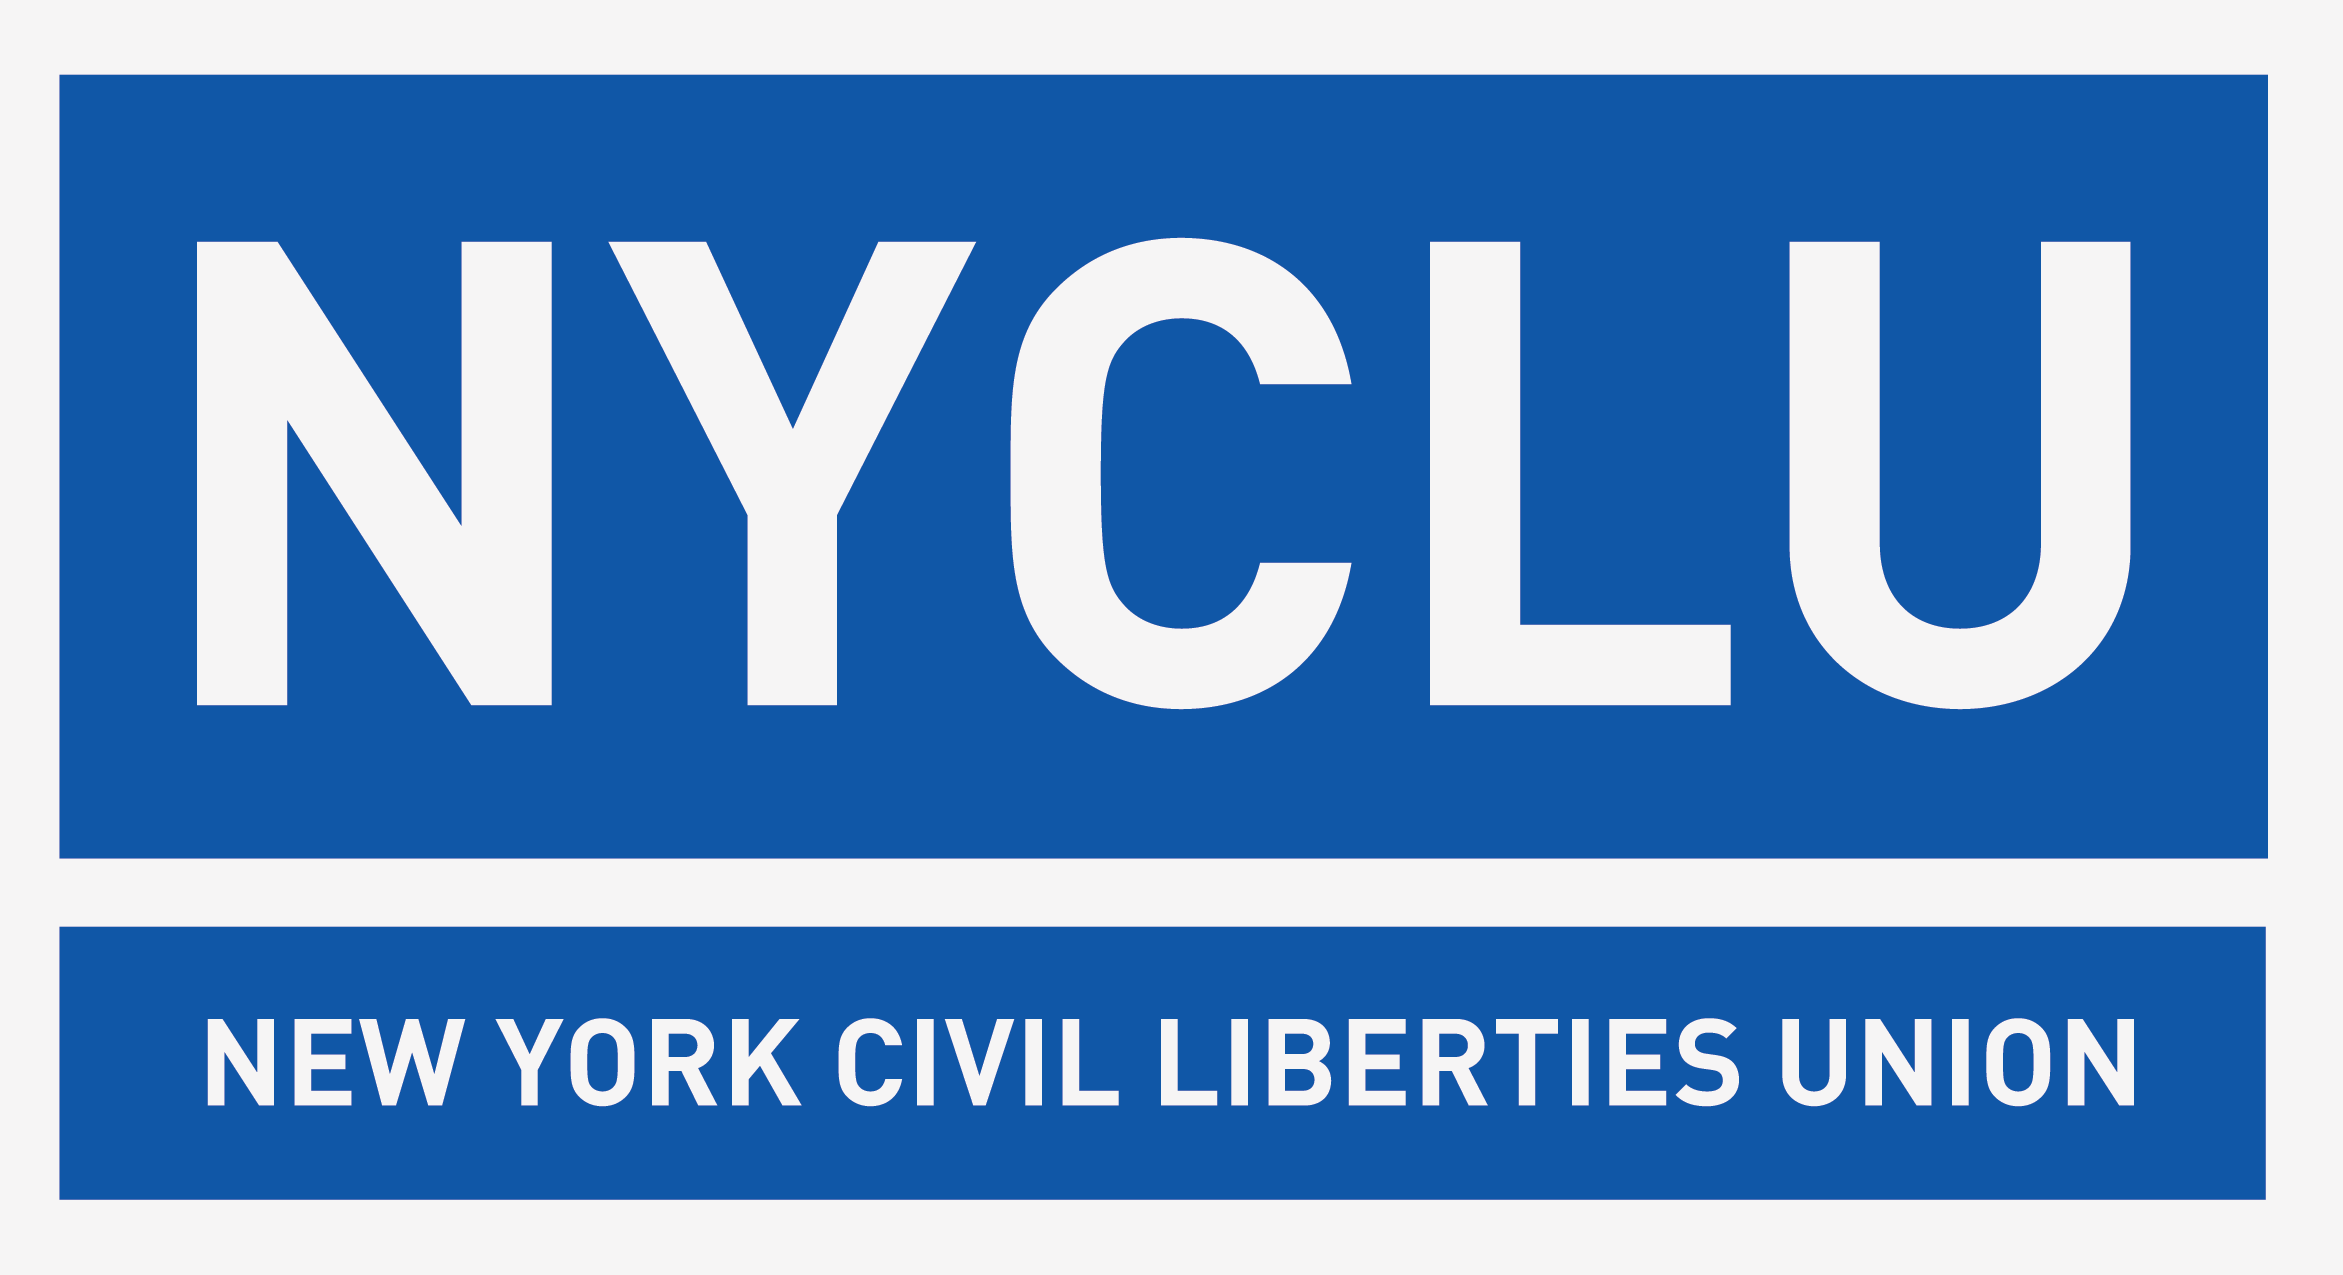 New York Civil Liberties Union